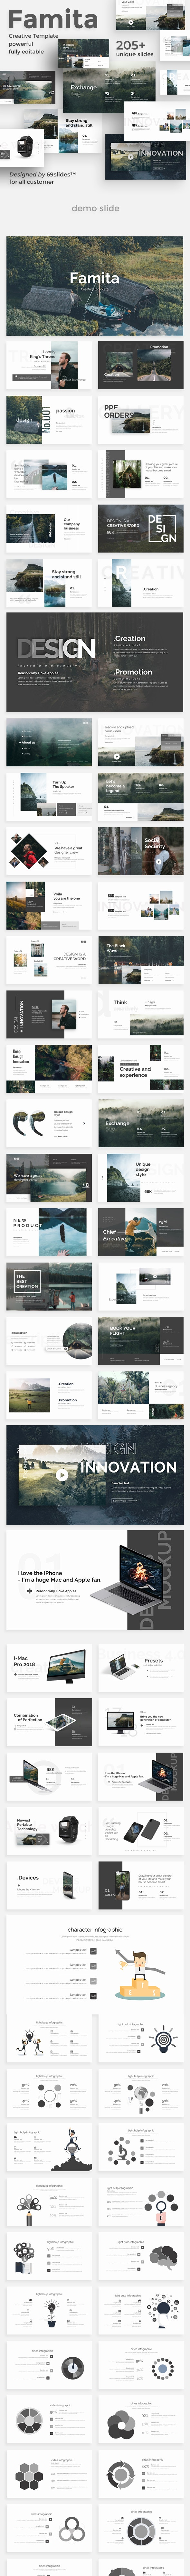 Famita Creative Powerpoint Template - Creative PowerPoint Templates